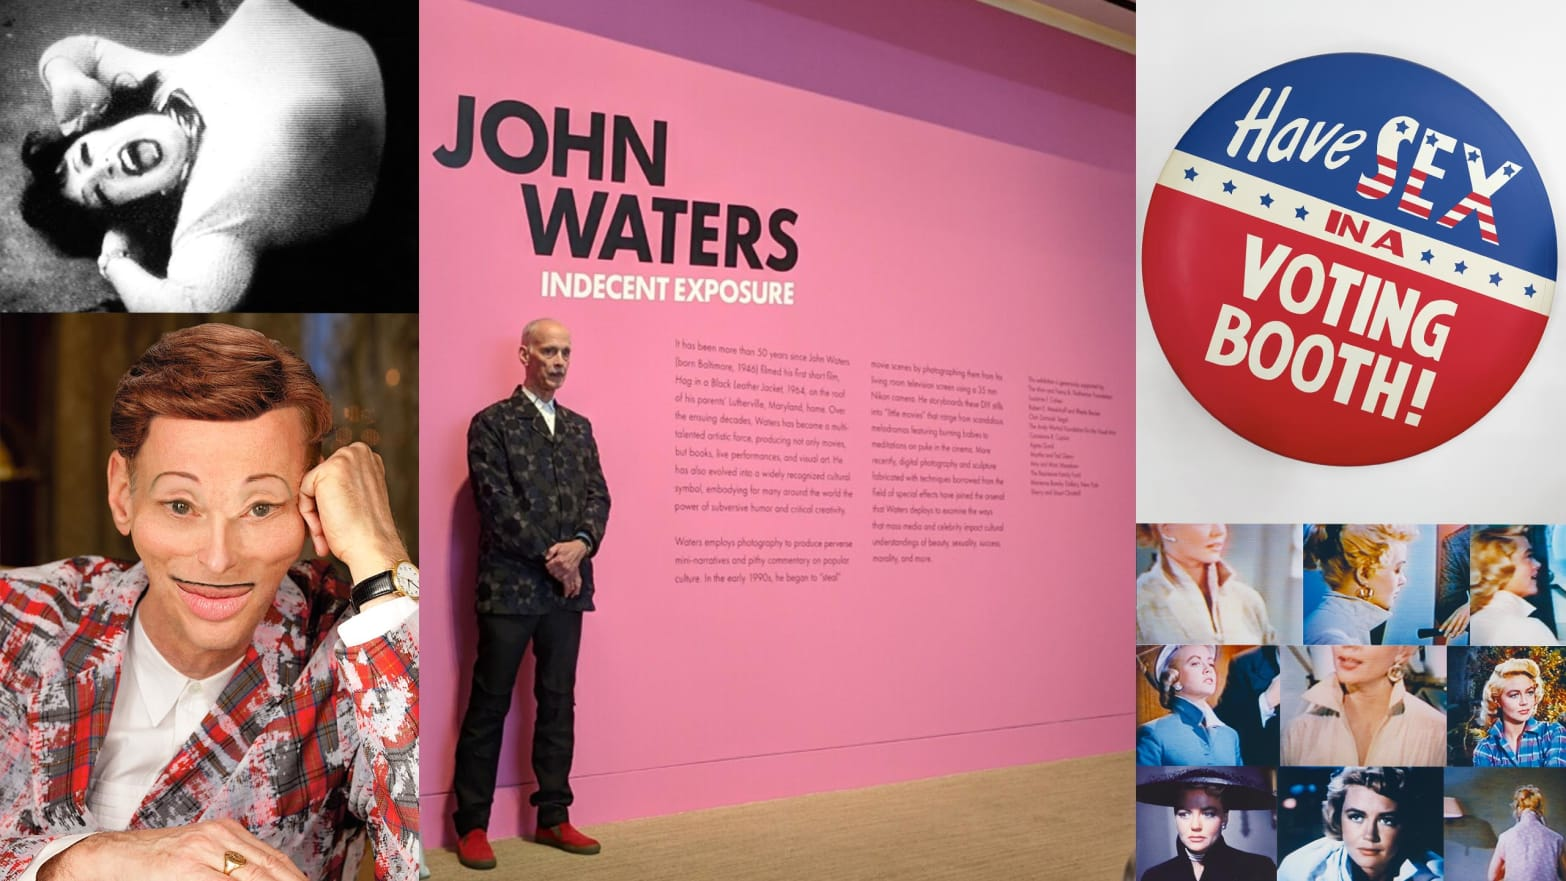 John Waters Takes Us on a Funny, Filthy Tour of His Fine Art